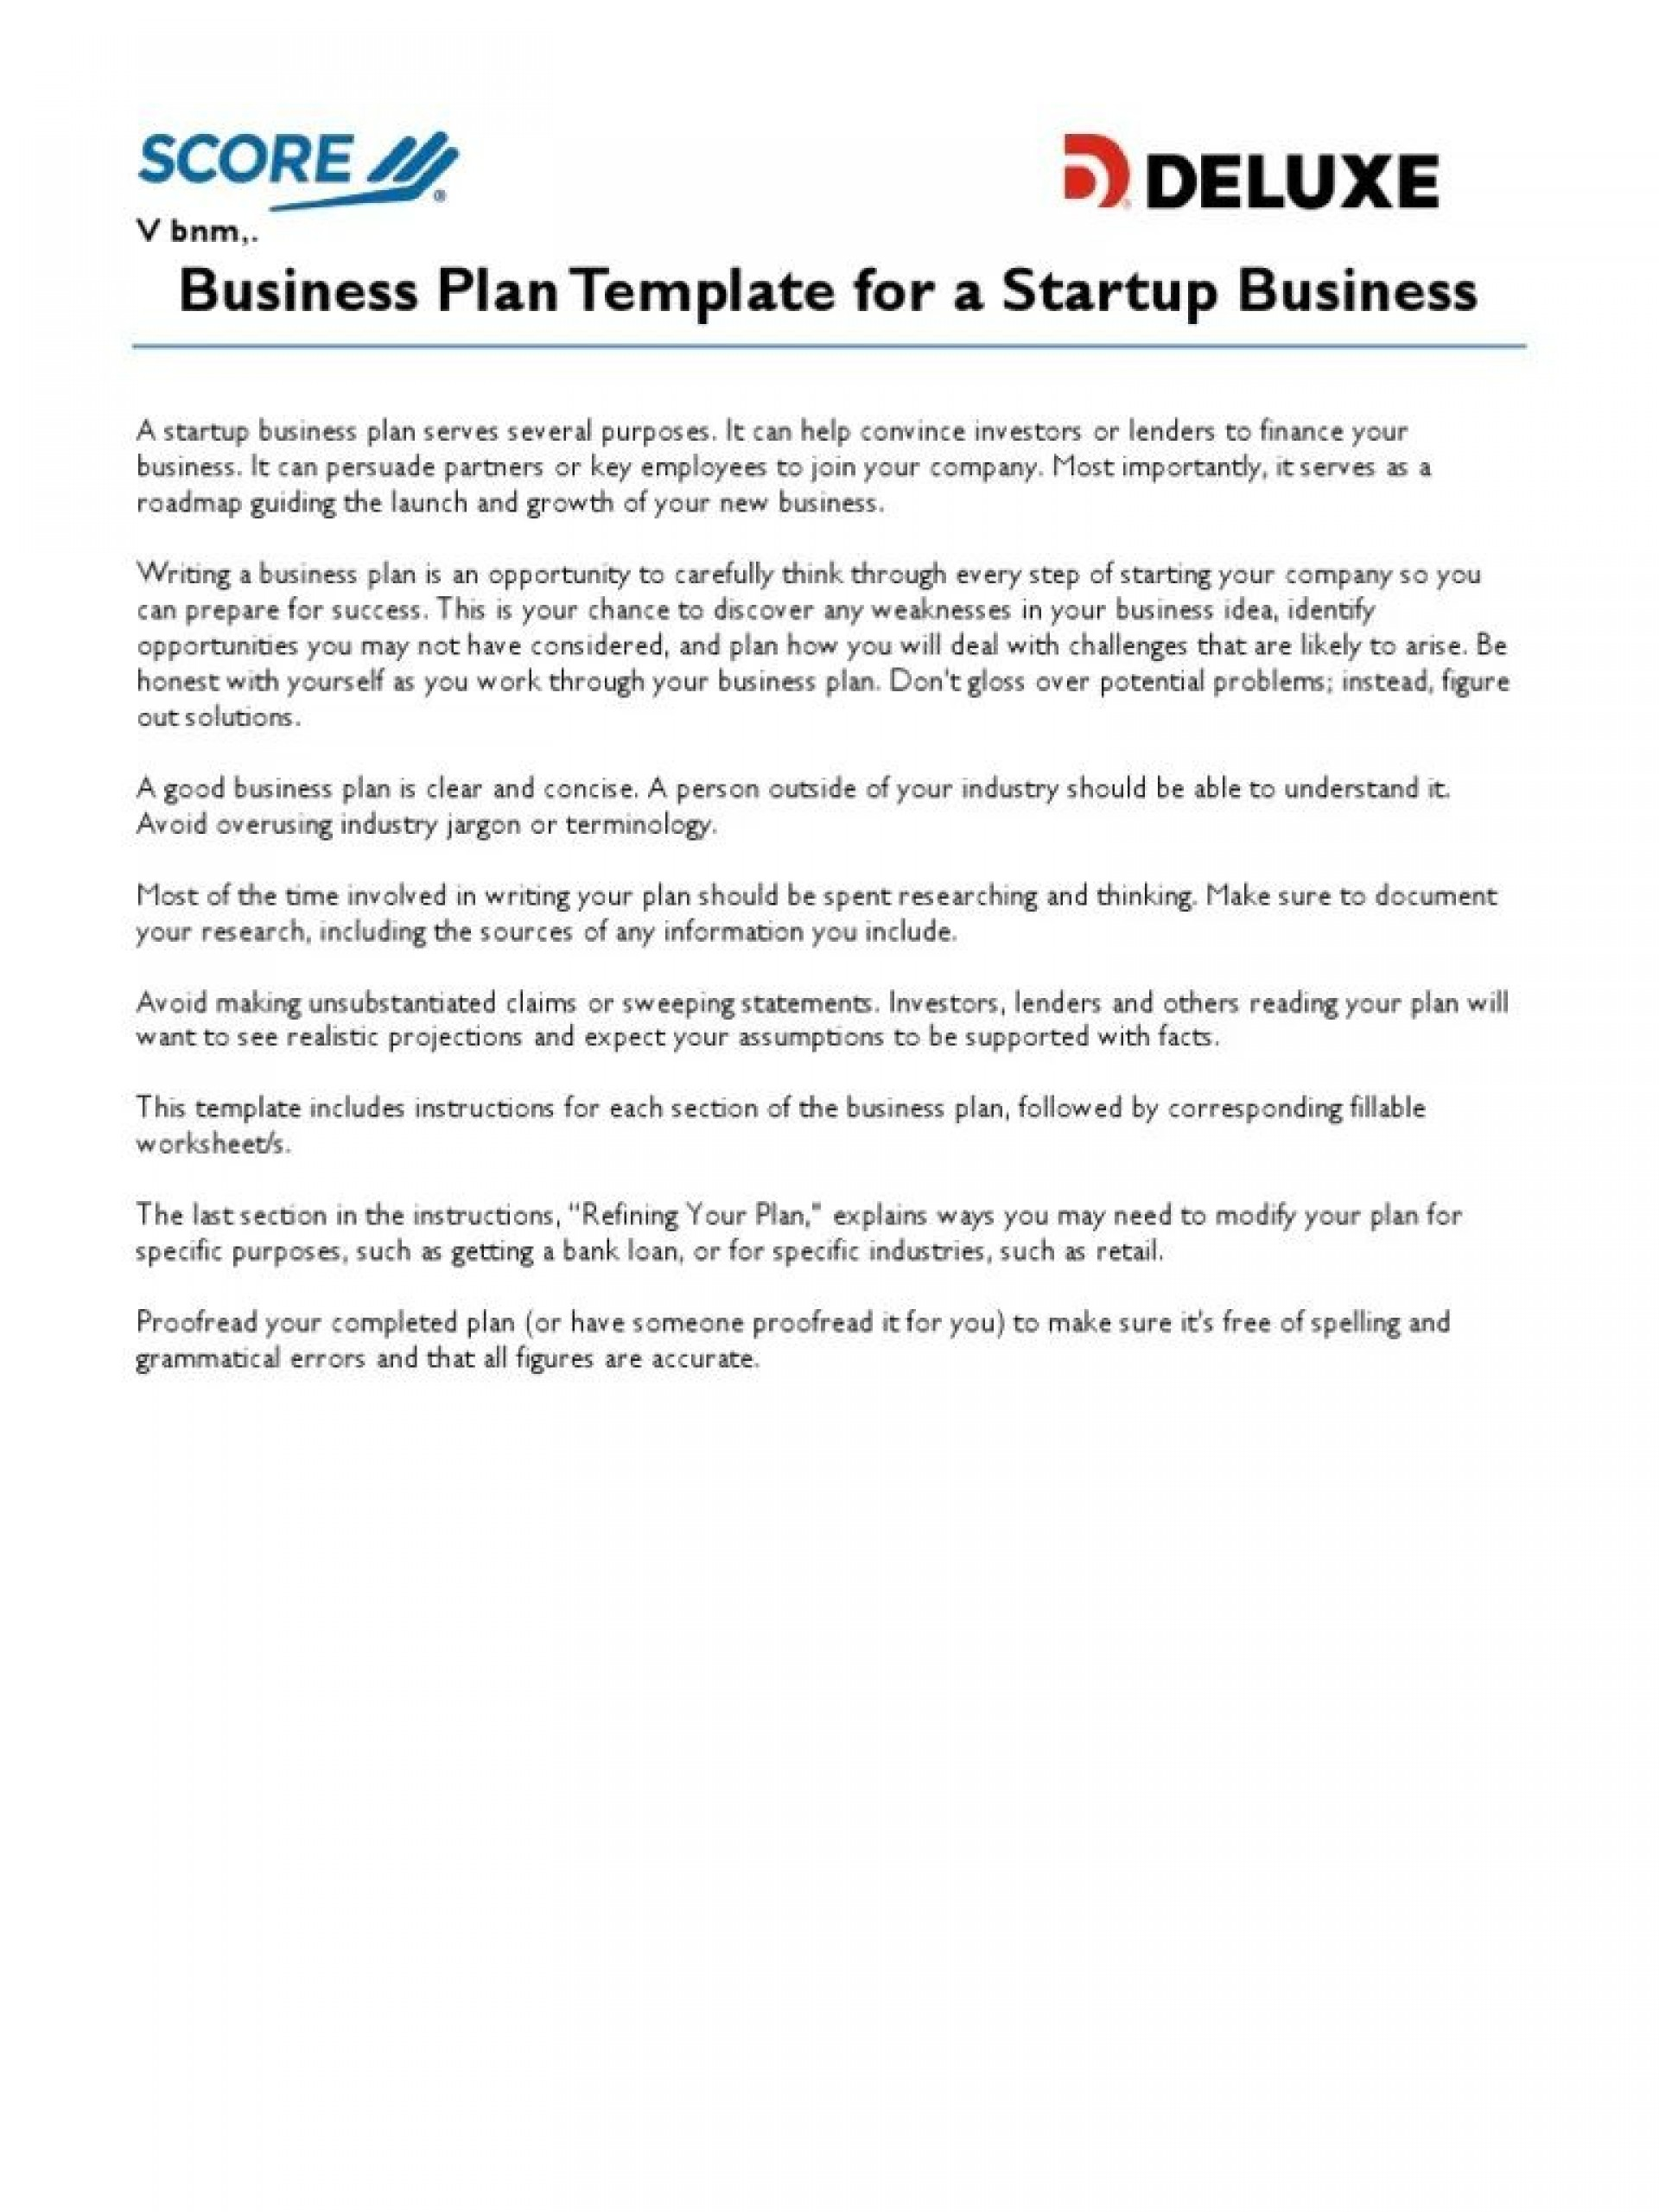 Score Business Plan Templates Addictionary